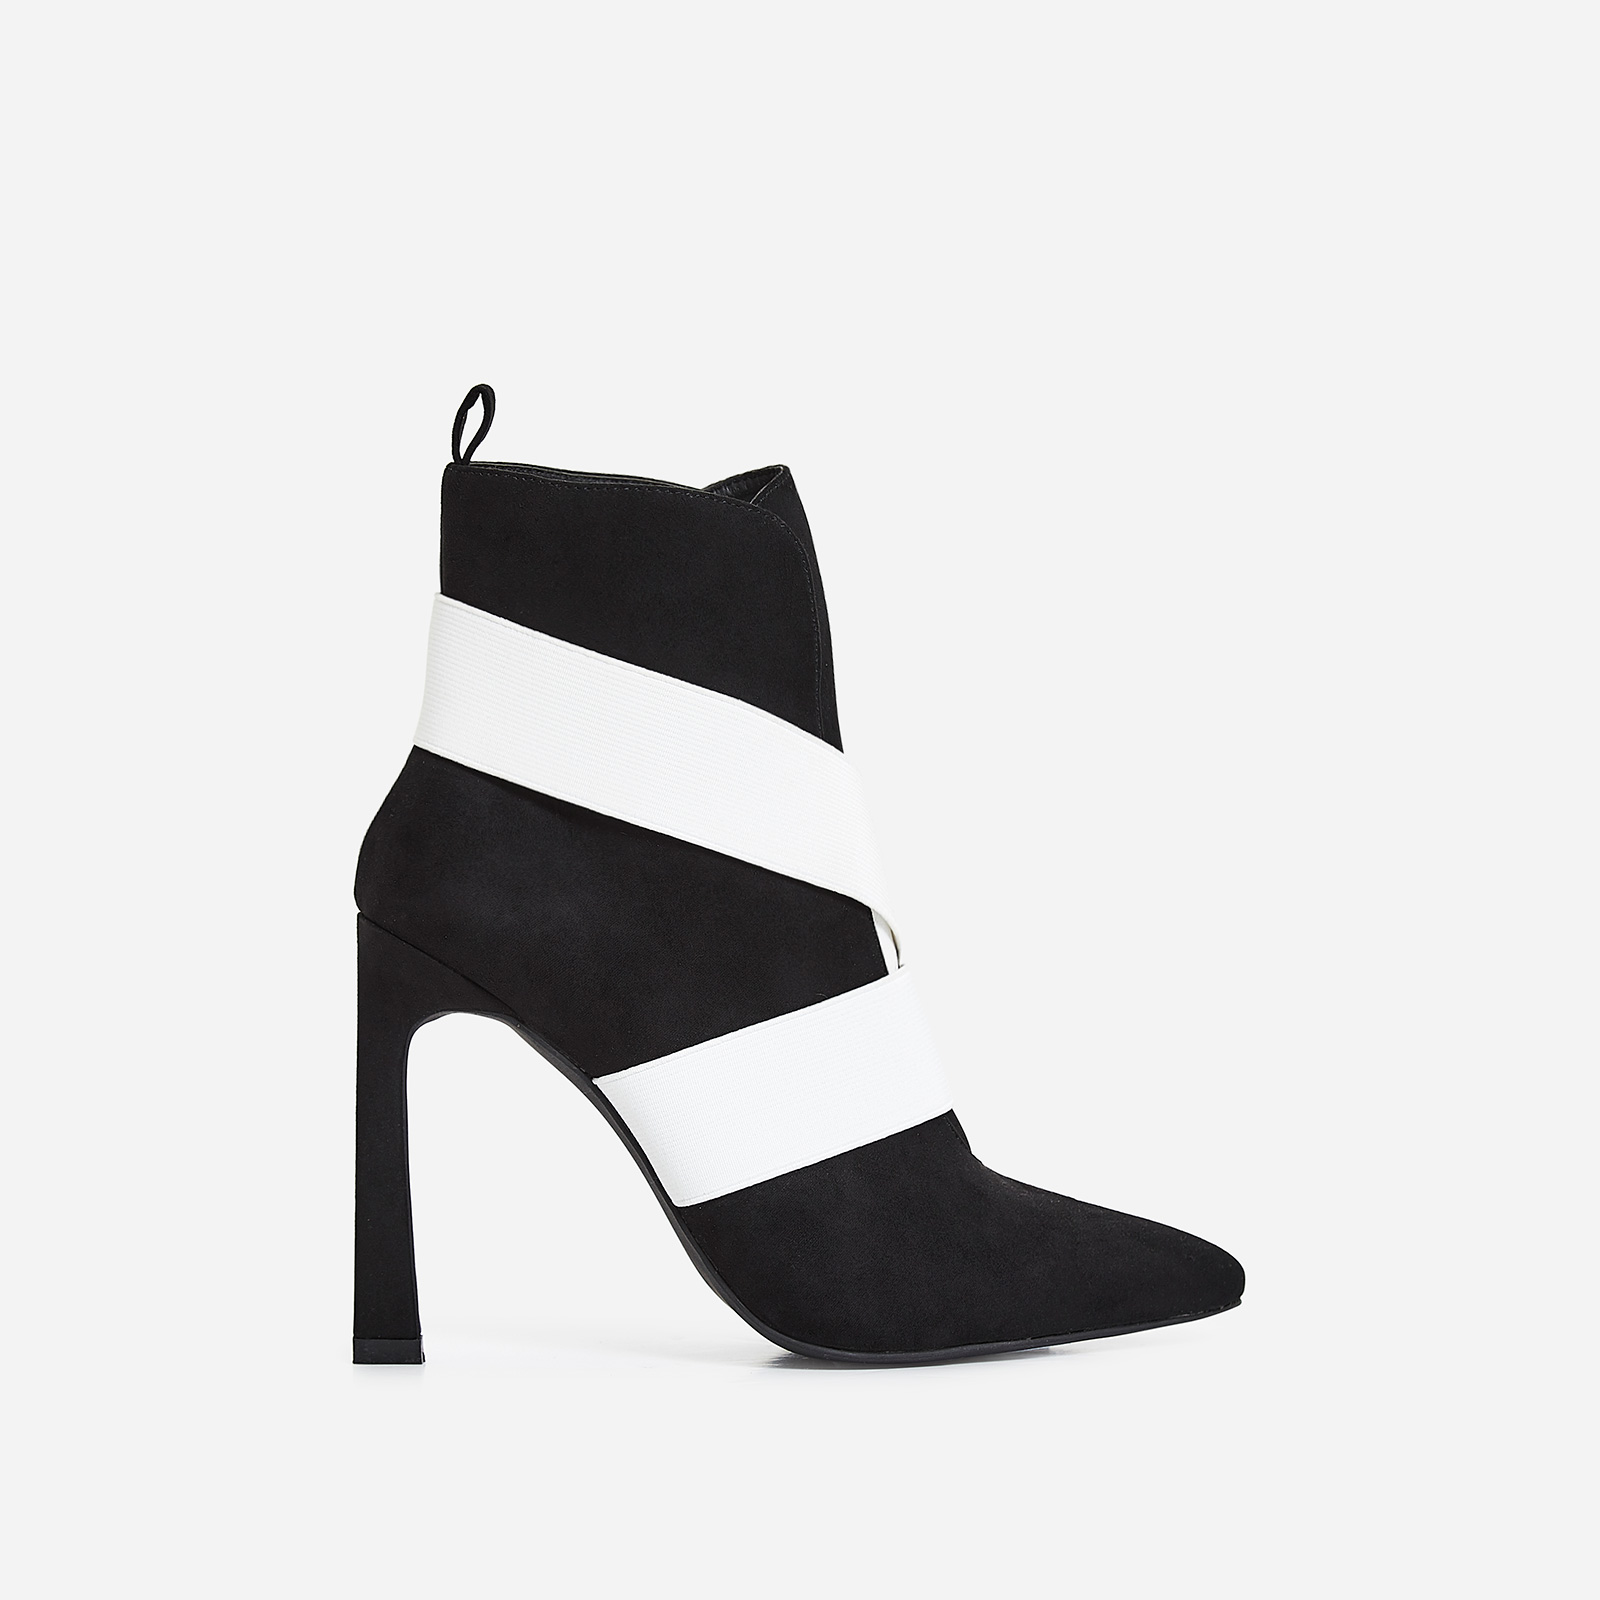 Alison White Elasticated Cross Over Ankle Boot In Black Faux Suede